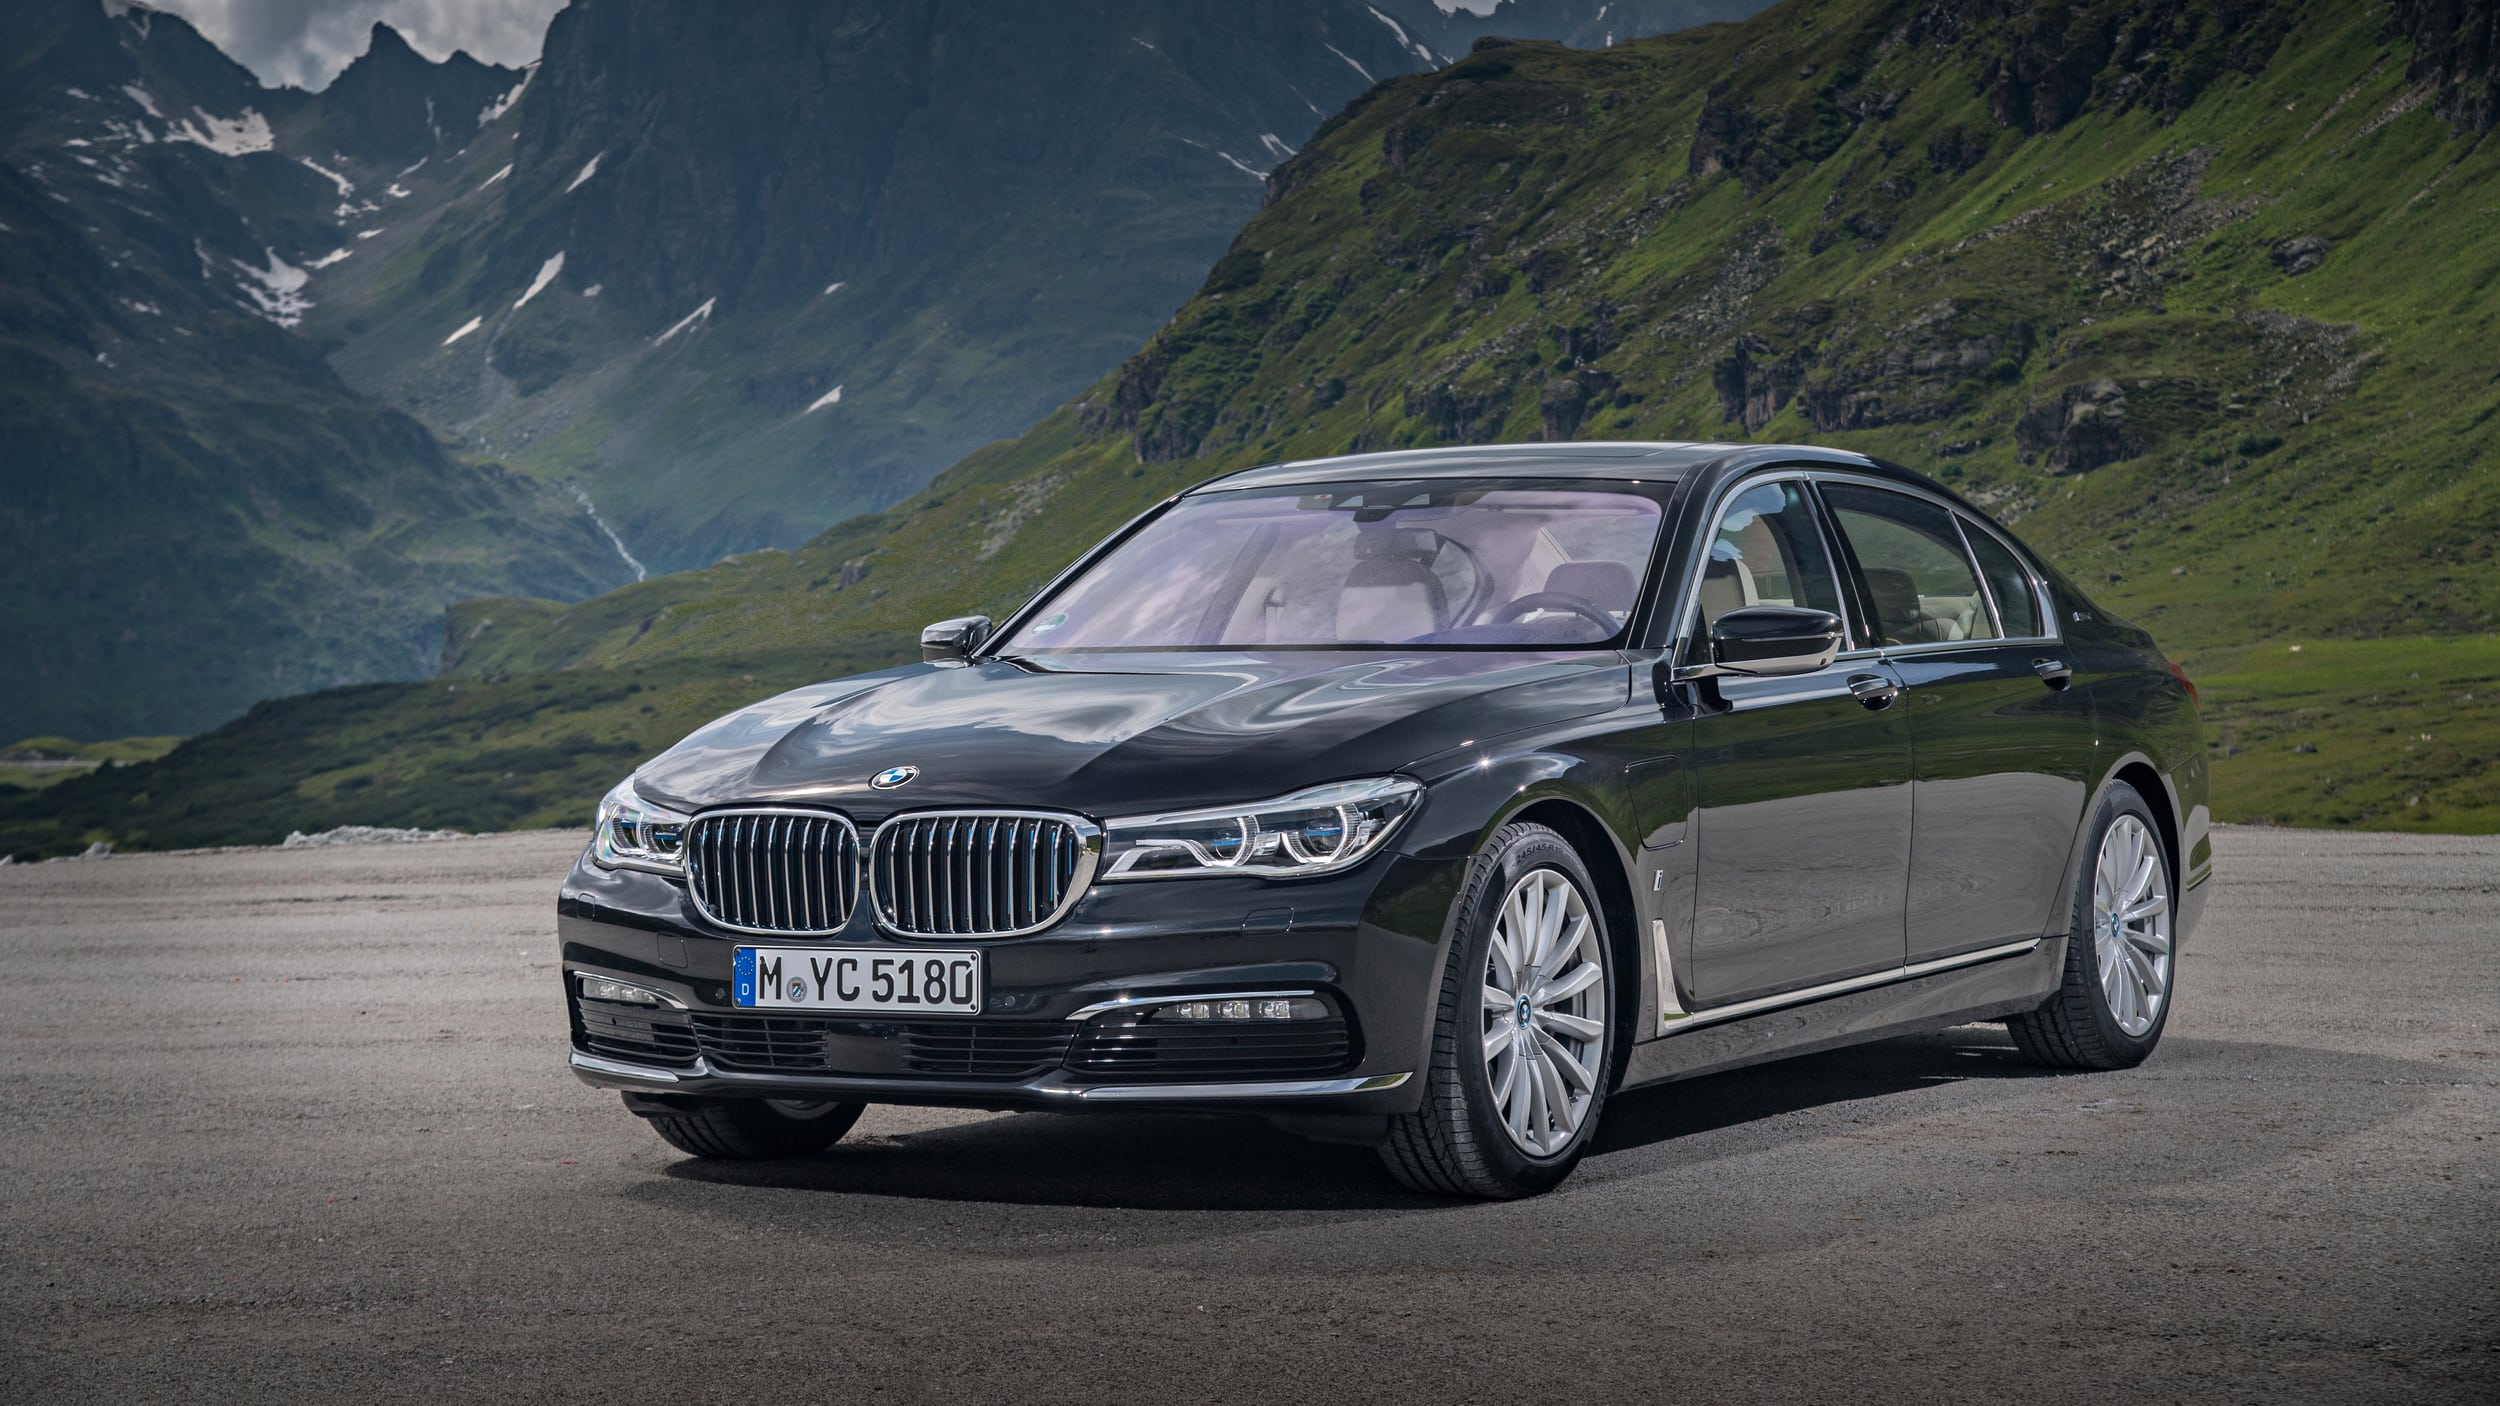 2020 bmw 740le release date | suv models